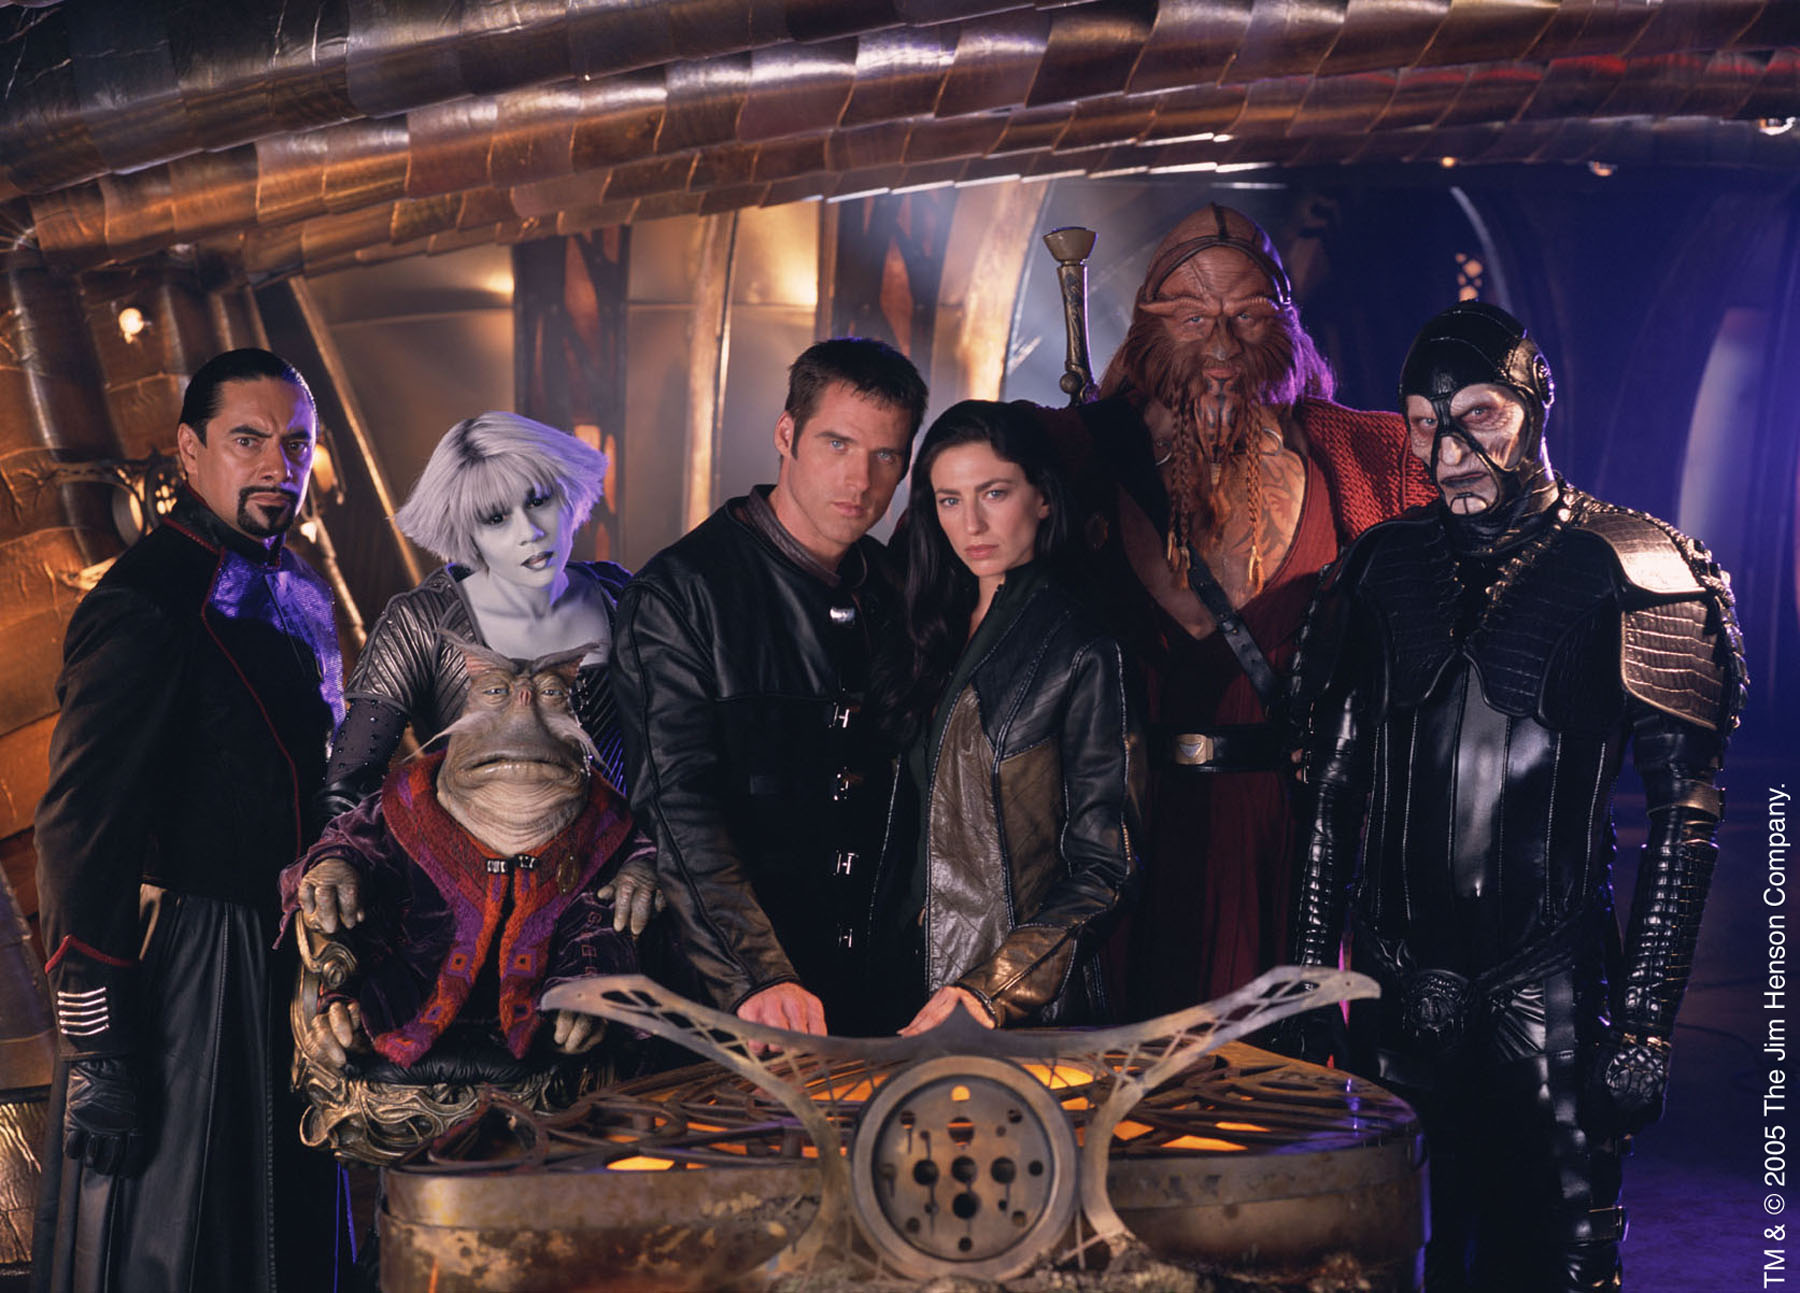 [News] The Jim Henson Company's FARSCAPE Lands on Amazon Prime